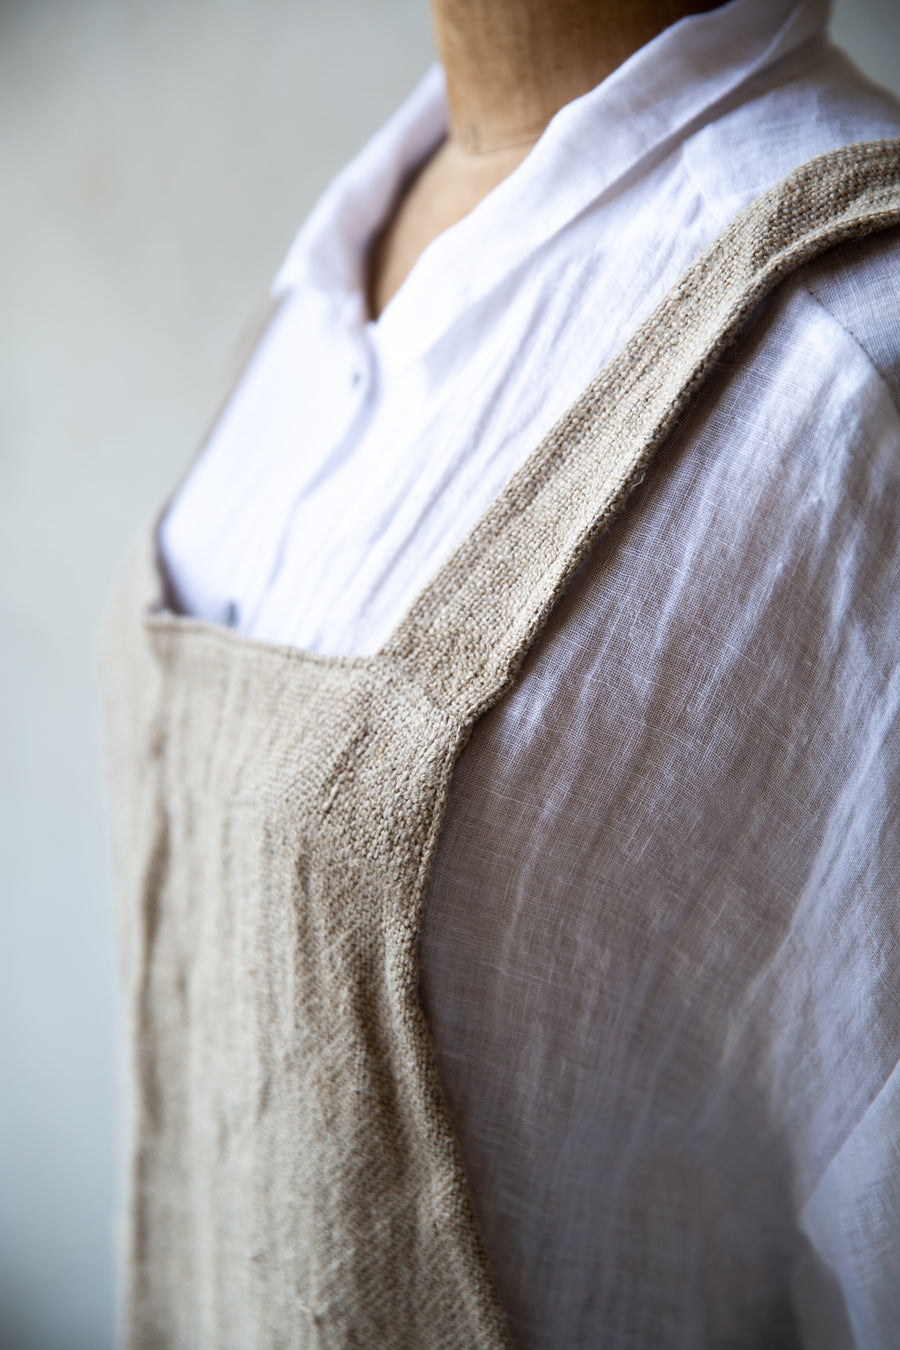 Loomed Linen cross back apron